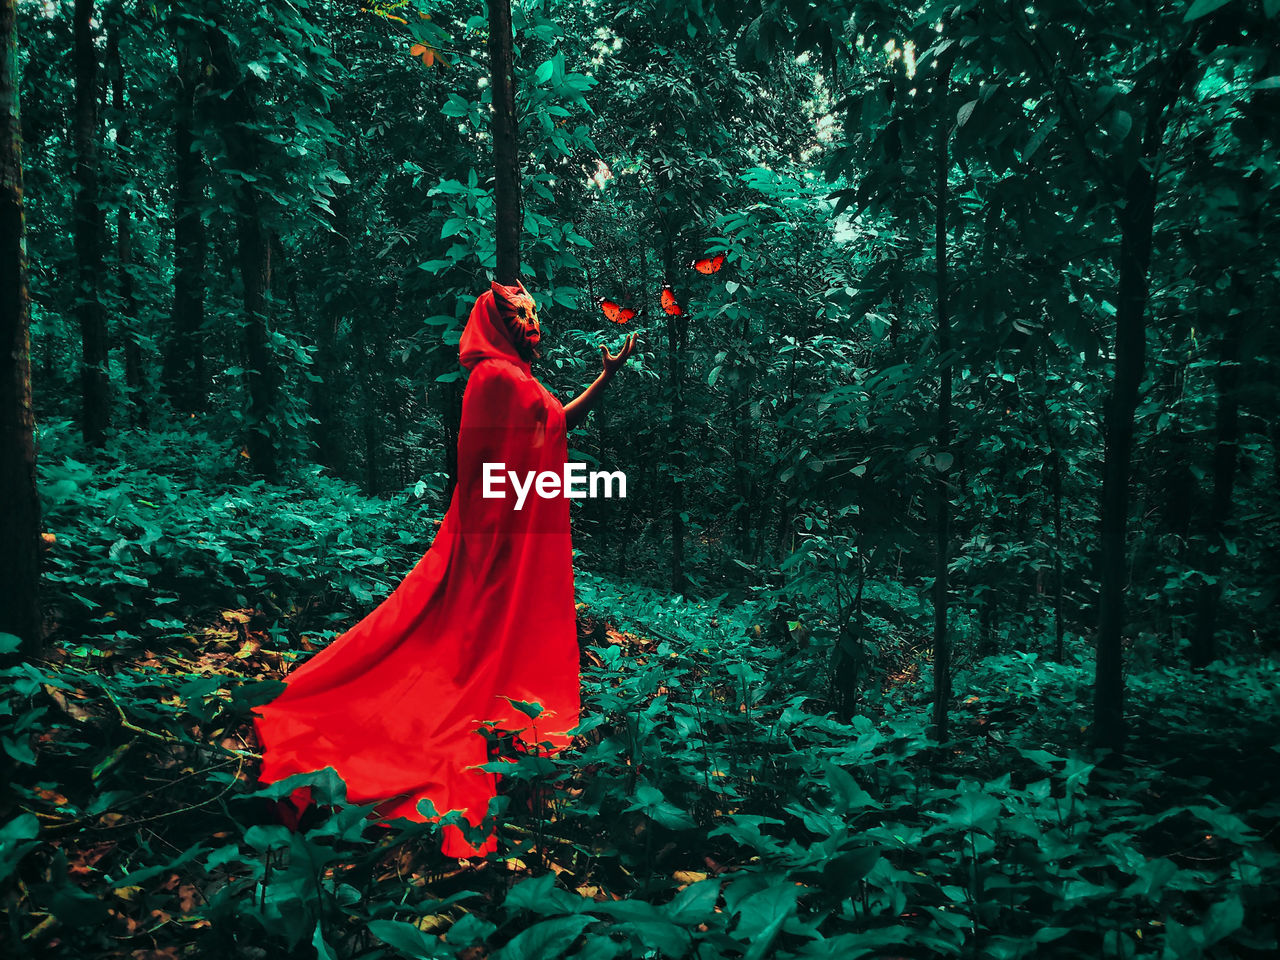 Woman With Red Cape Standing By Plants In Forest